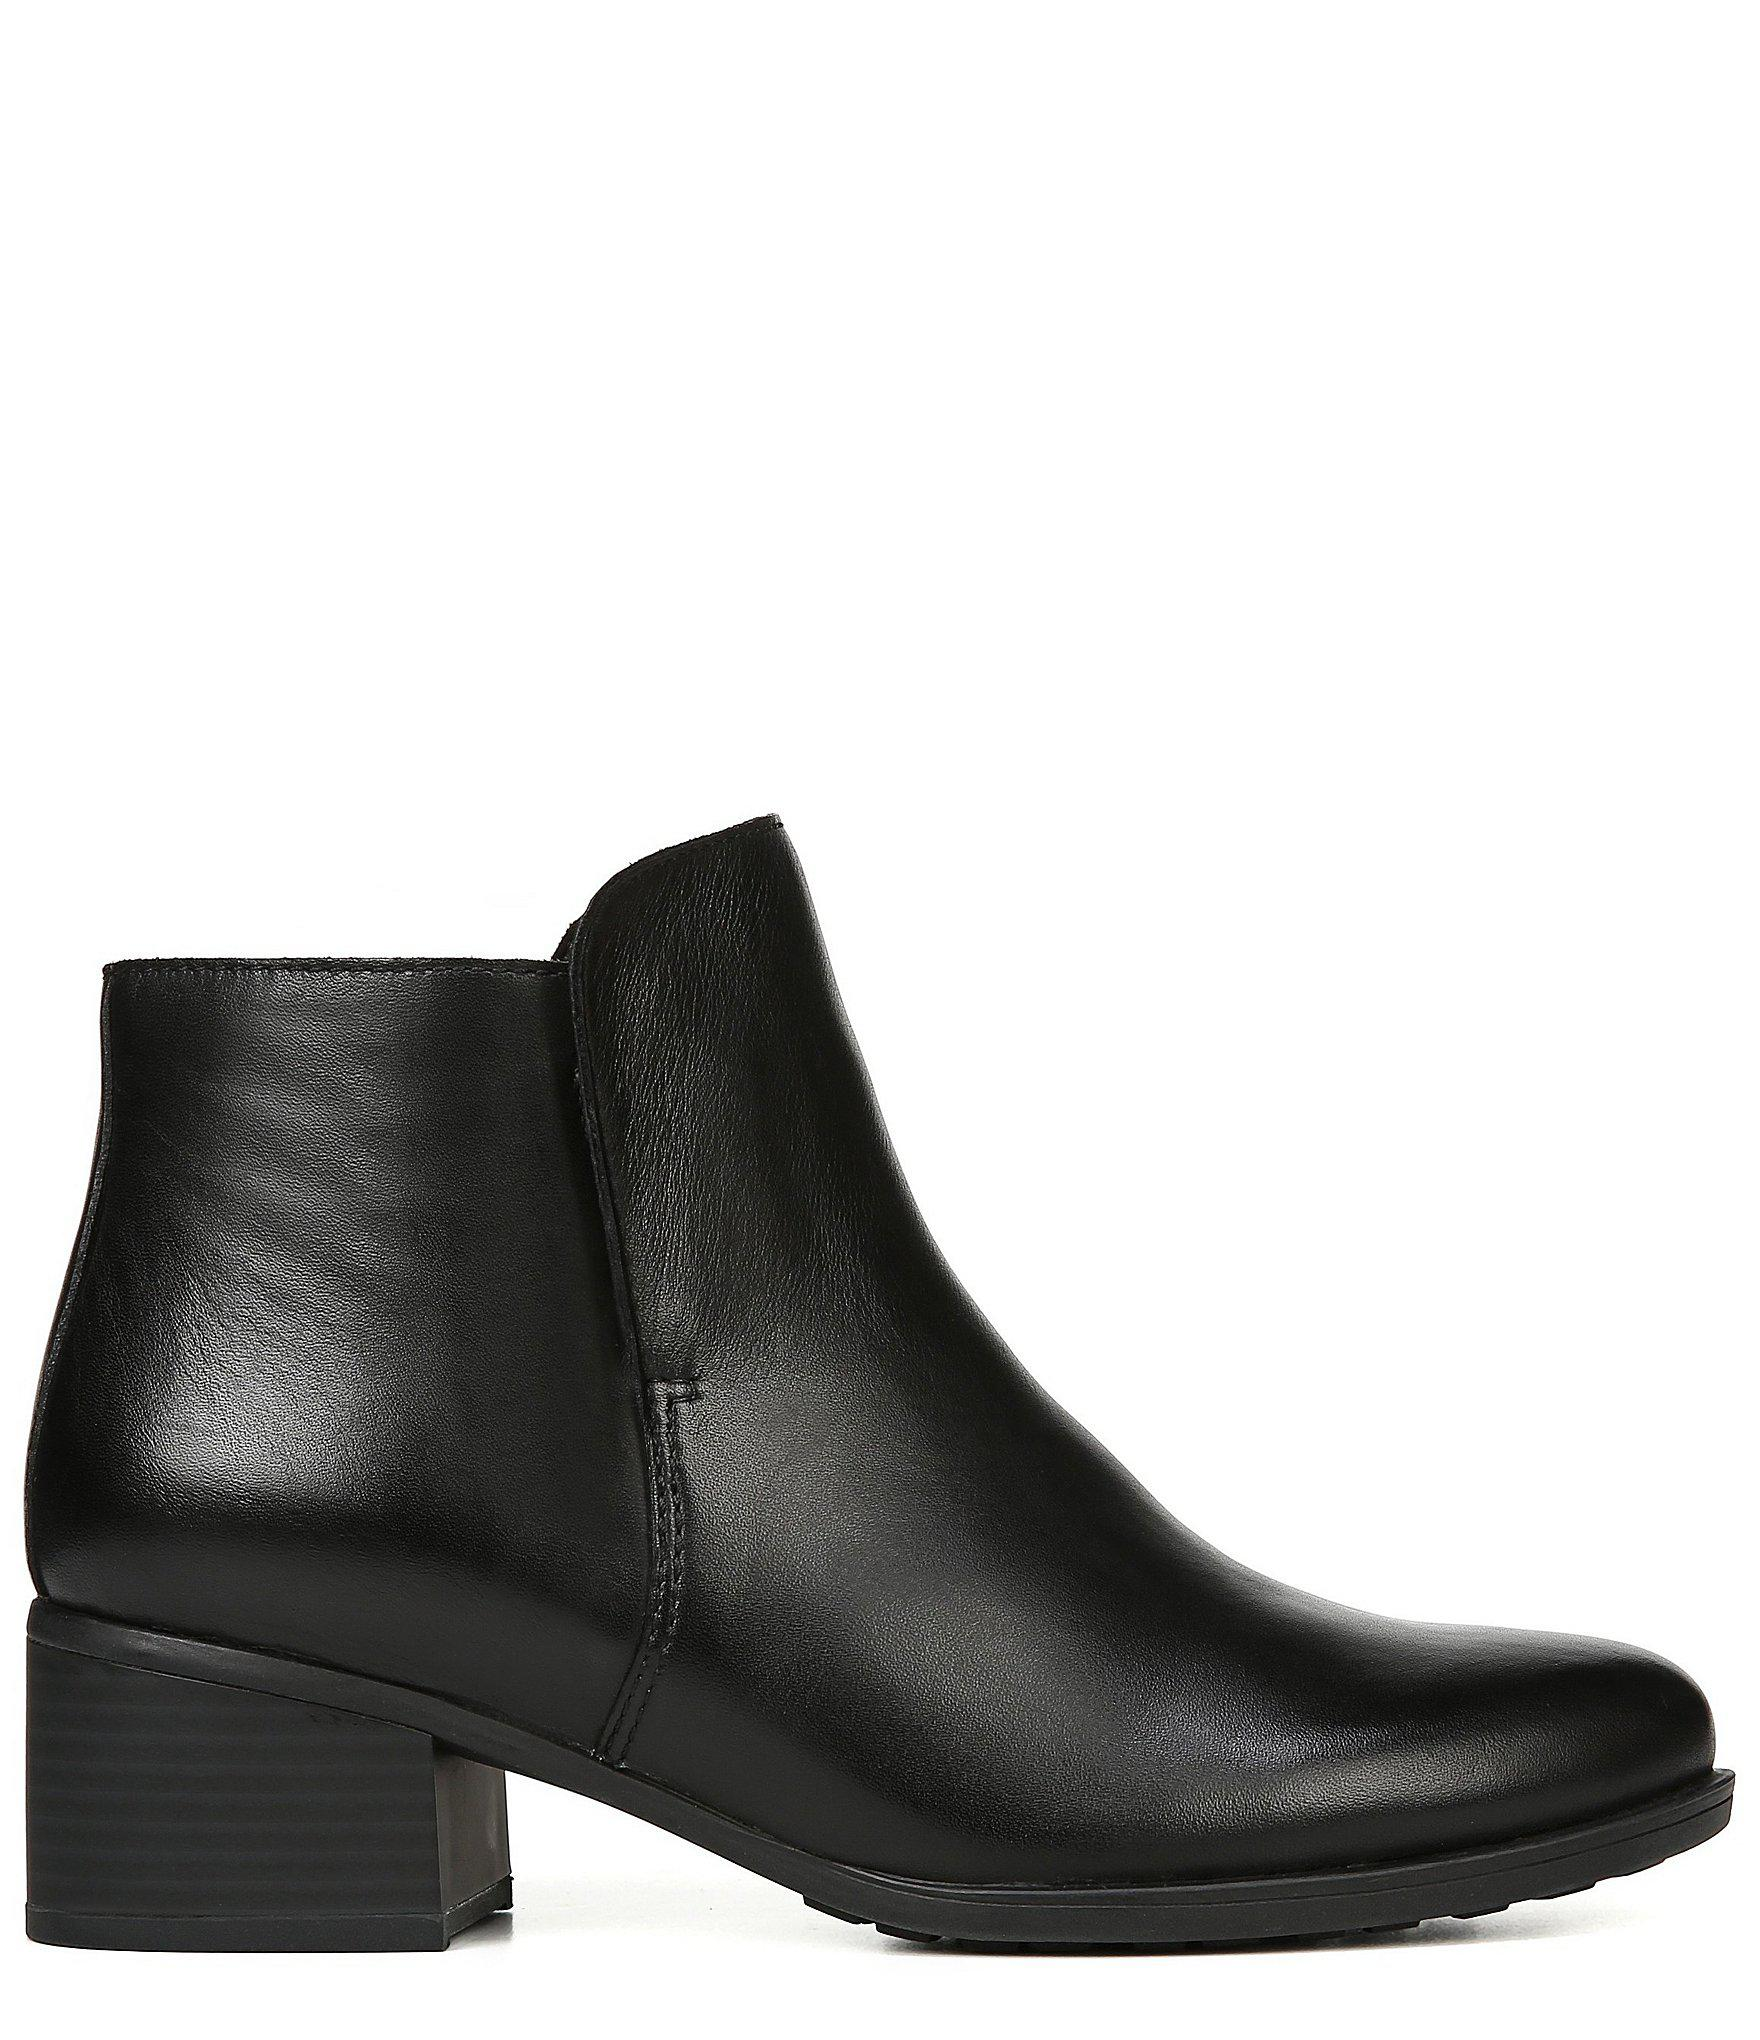 65de0f86afac Lyst - Naturalizer Deena Waterproof Leather Block Heel Booties in Black